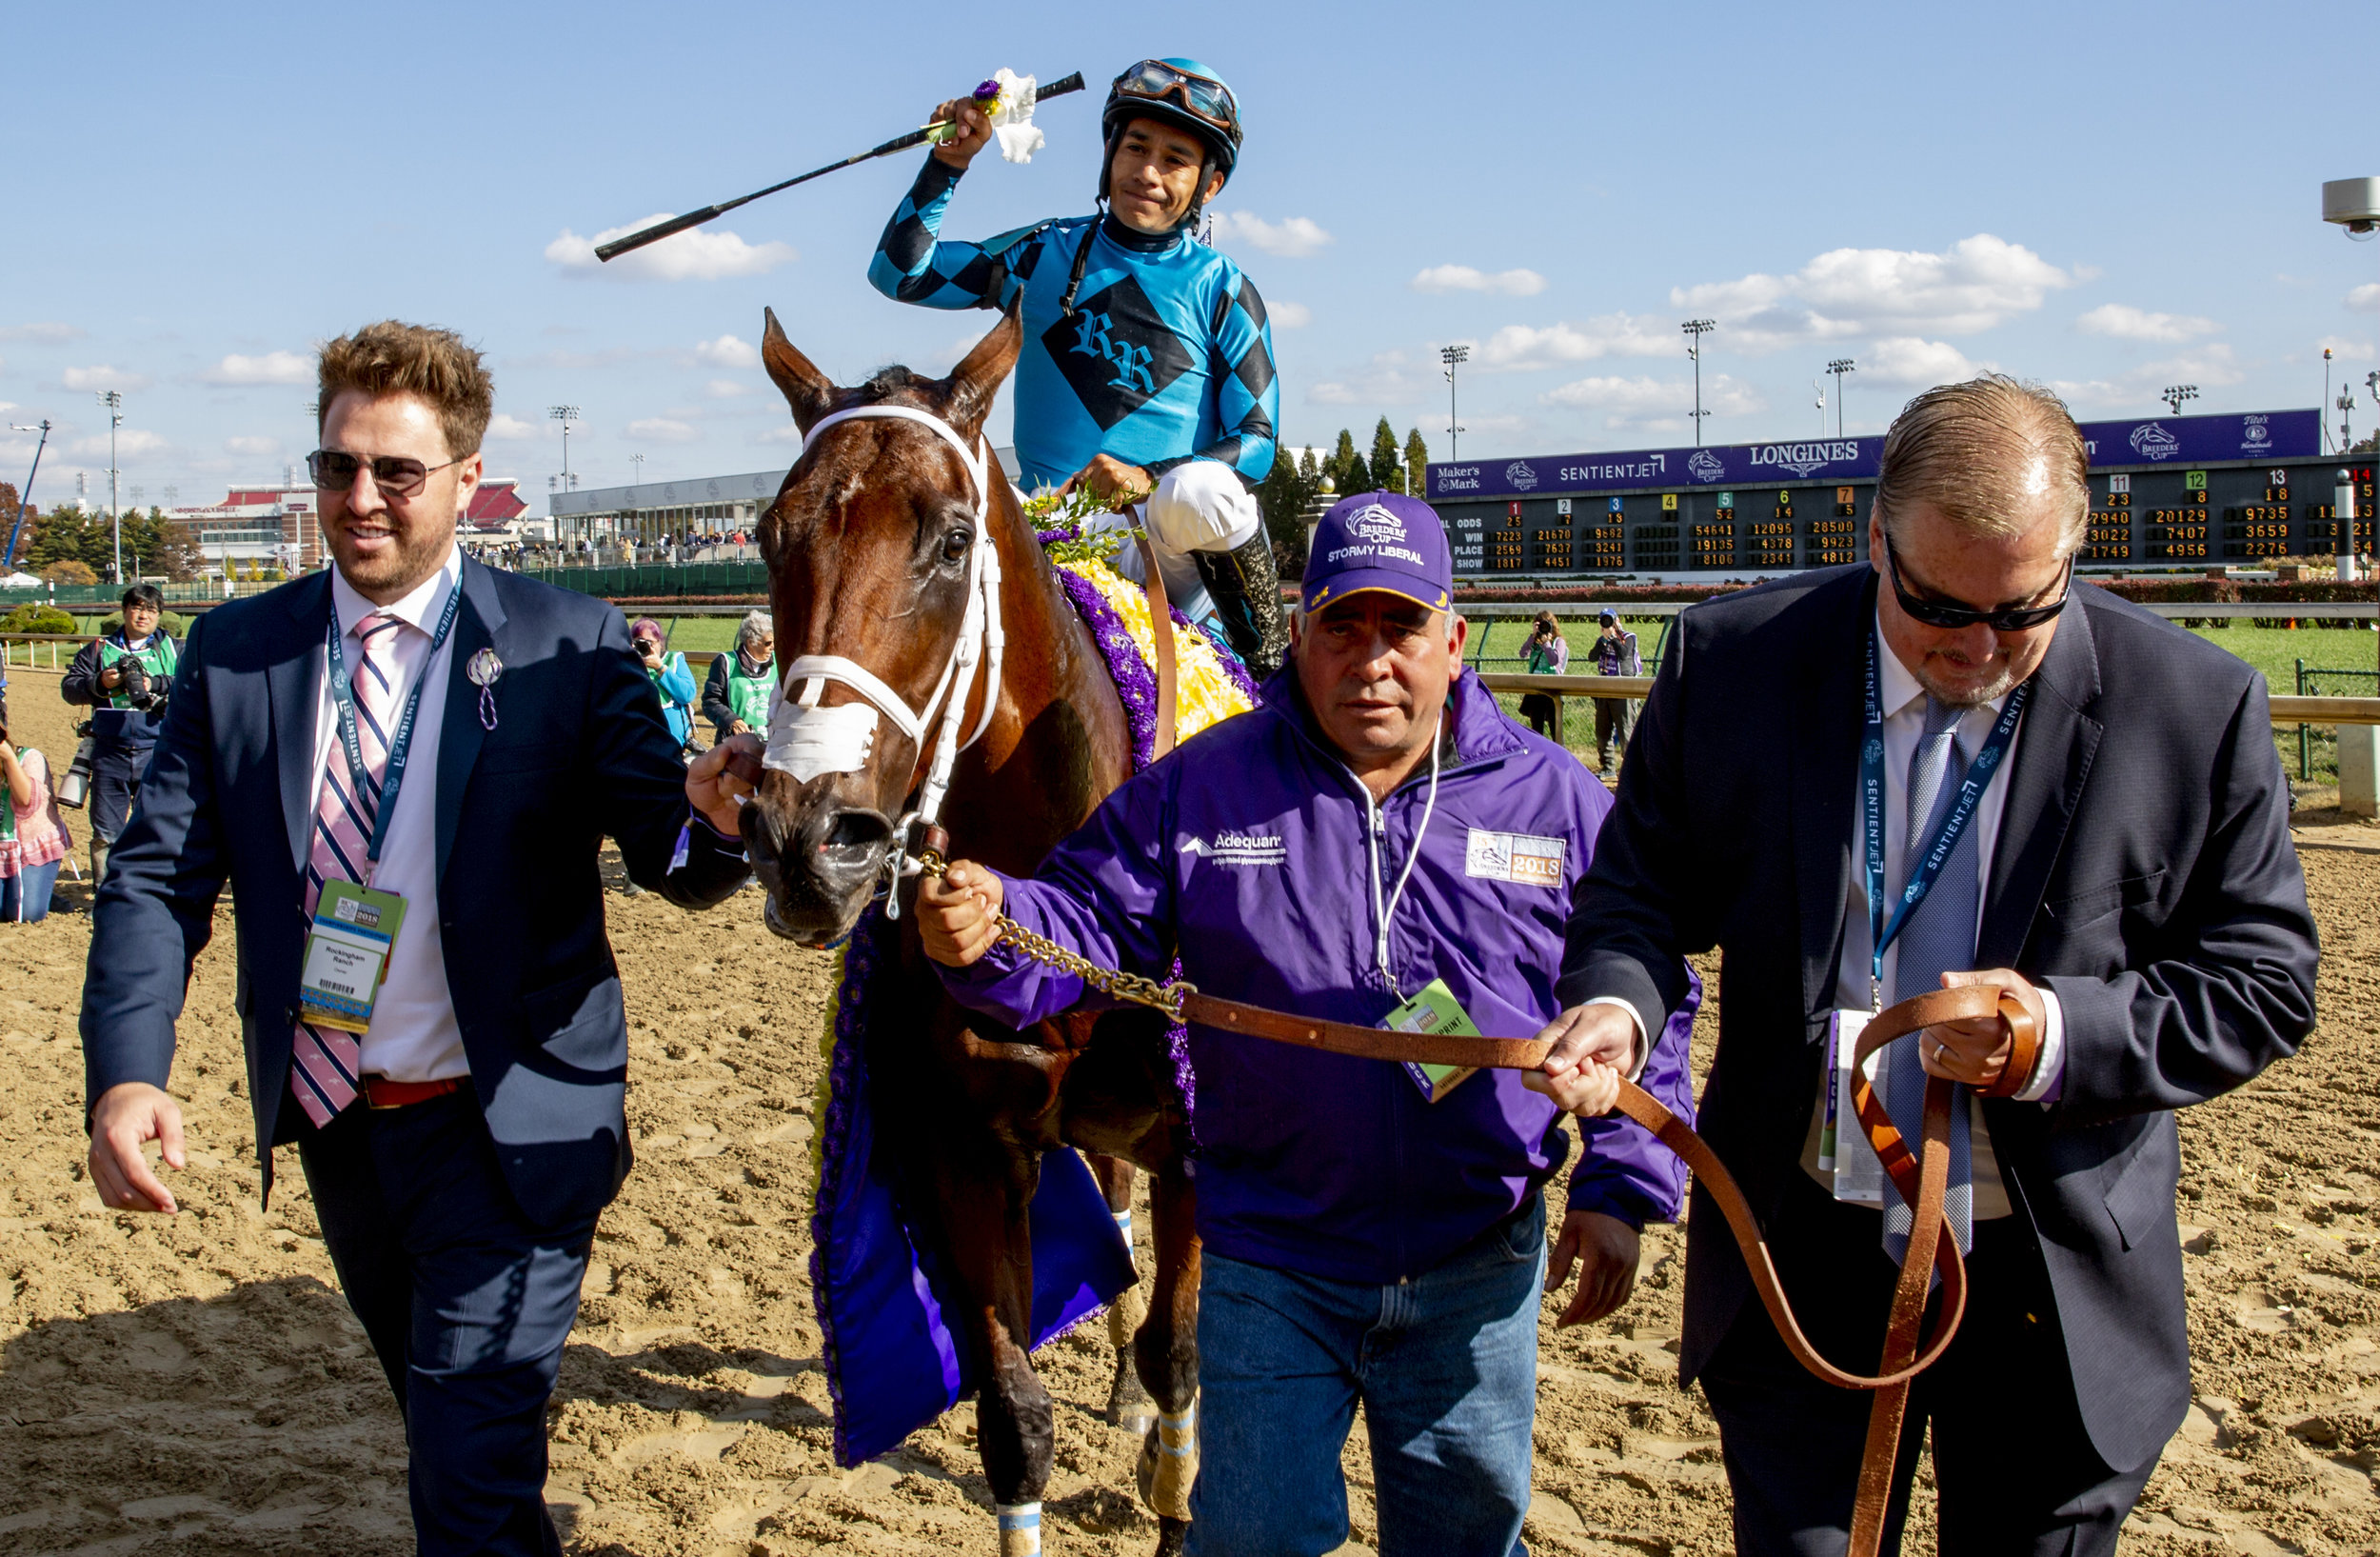 Gary Hartunian (right) leading Roy H, winner of the Twinspires Breeders' Cup Sprint